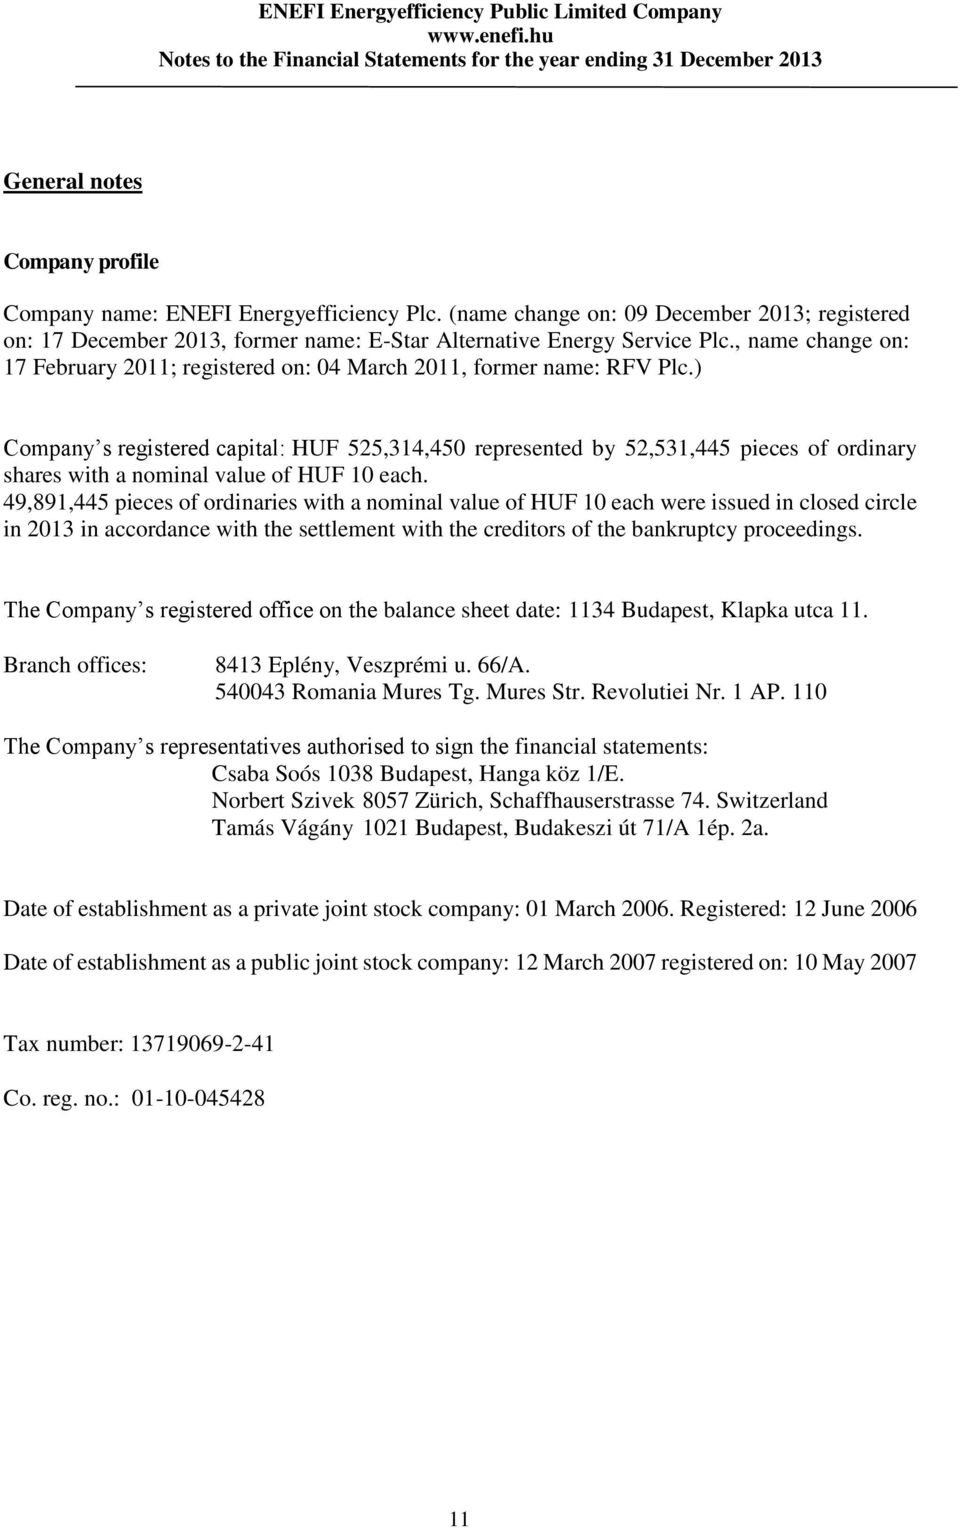 ) Company s registered capital: HUF 525,314,450 represented by 52,531,445 pieces of ordinary shares with a nominal value of HUF 10 each.